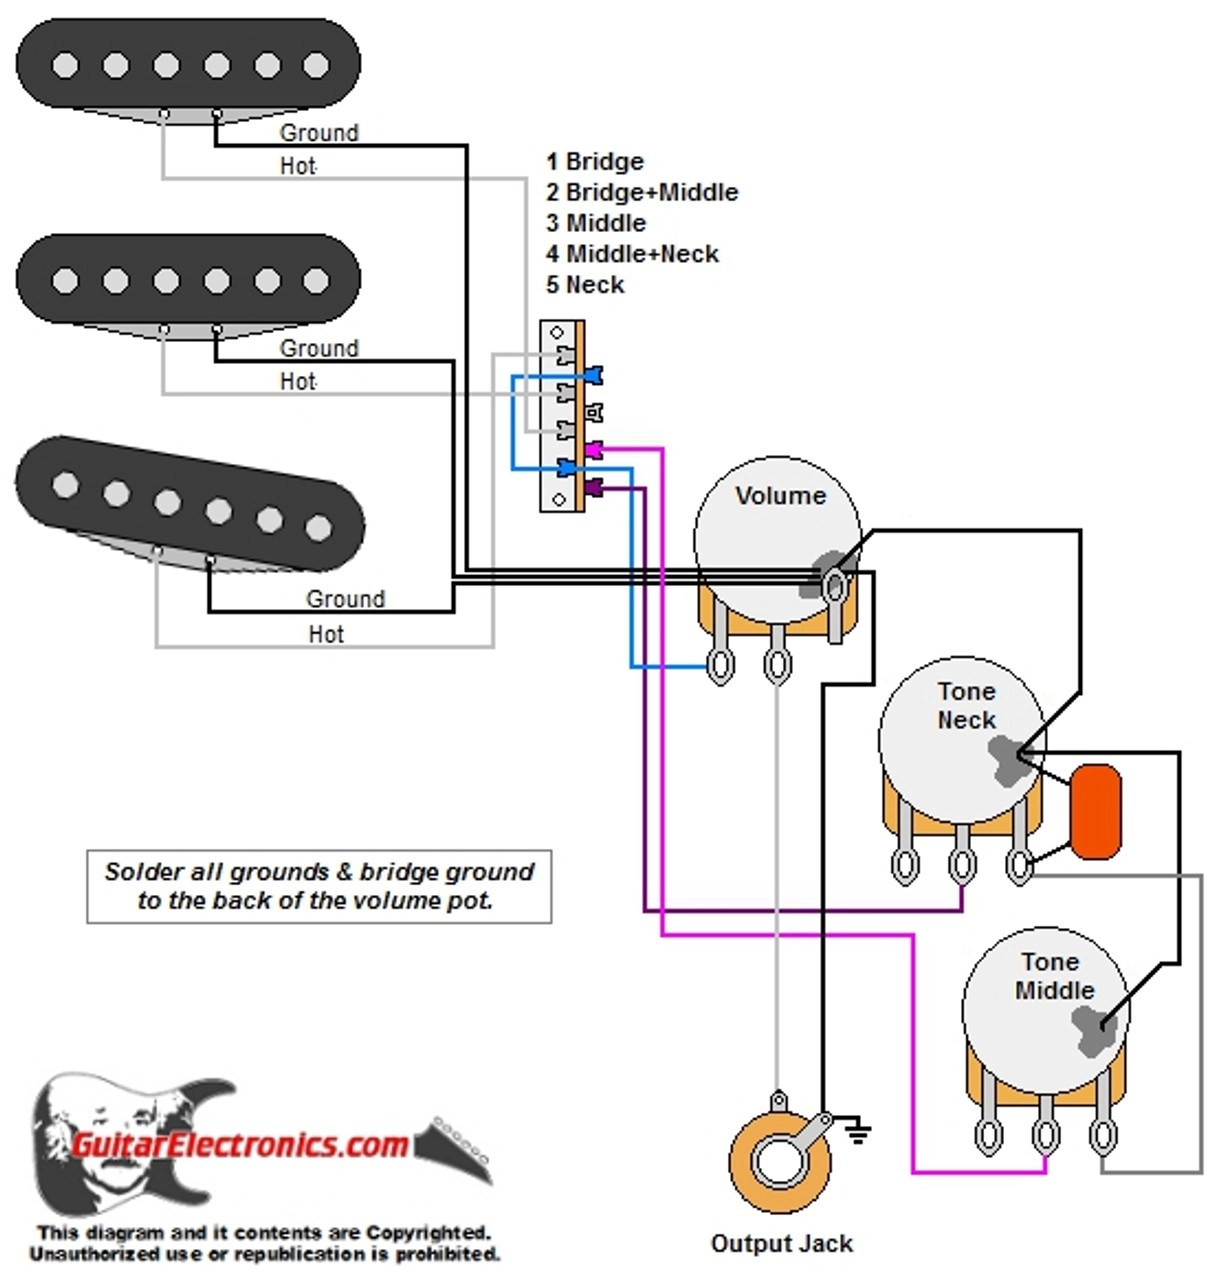 fender strat wire diagram wiring diagram numberstrat style guitar wiring diagram fender stratocaster s1 wiring diagram [ 1225 x 1280 Pixel ]